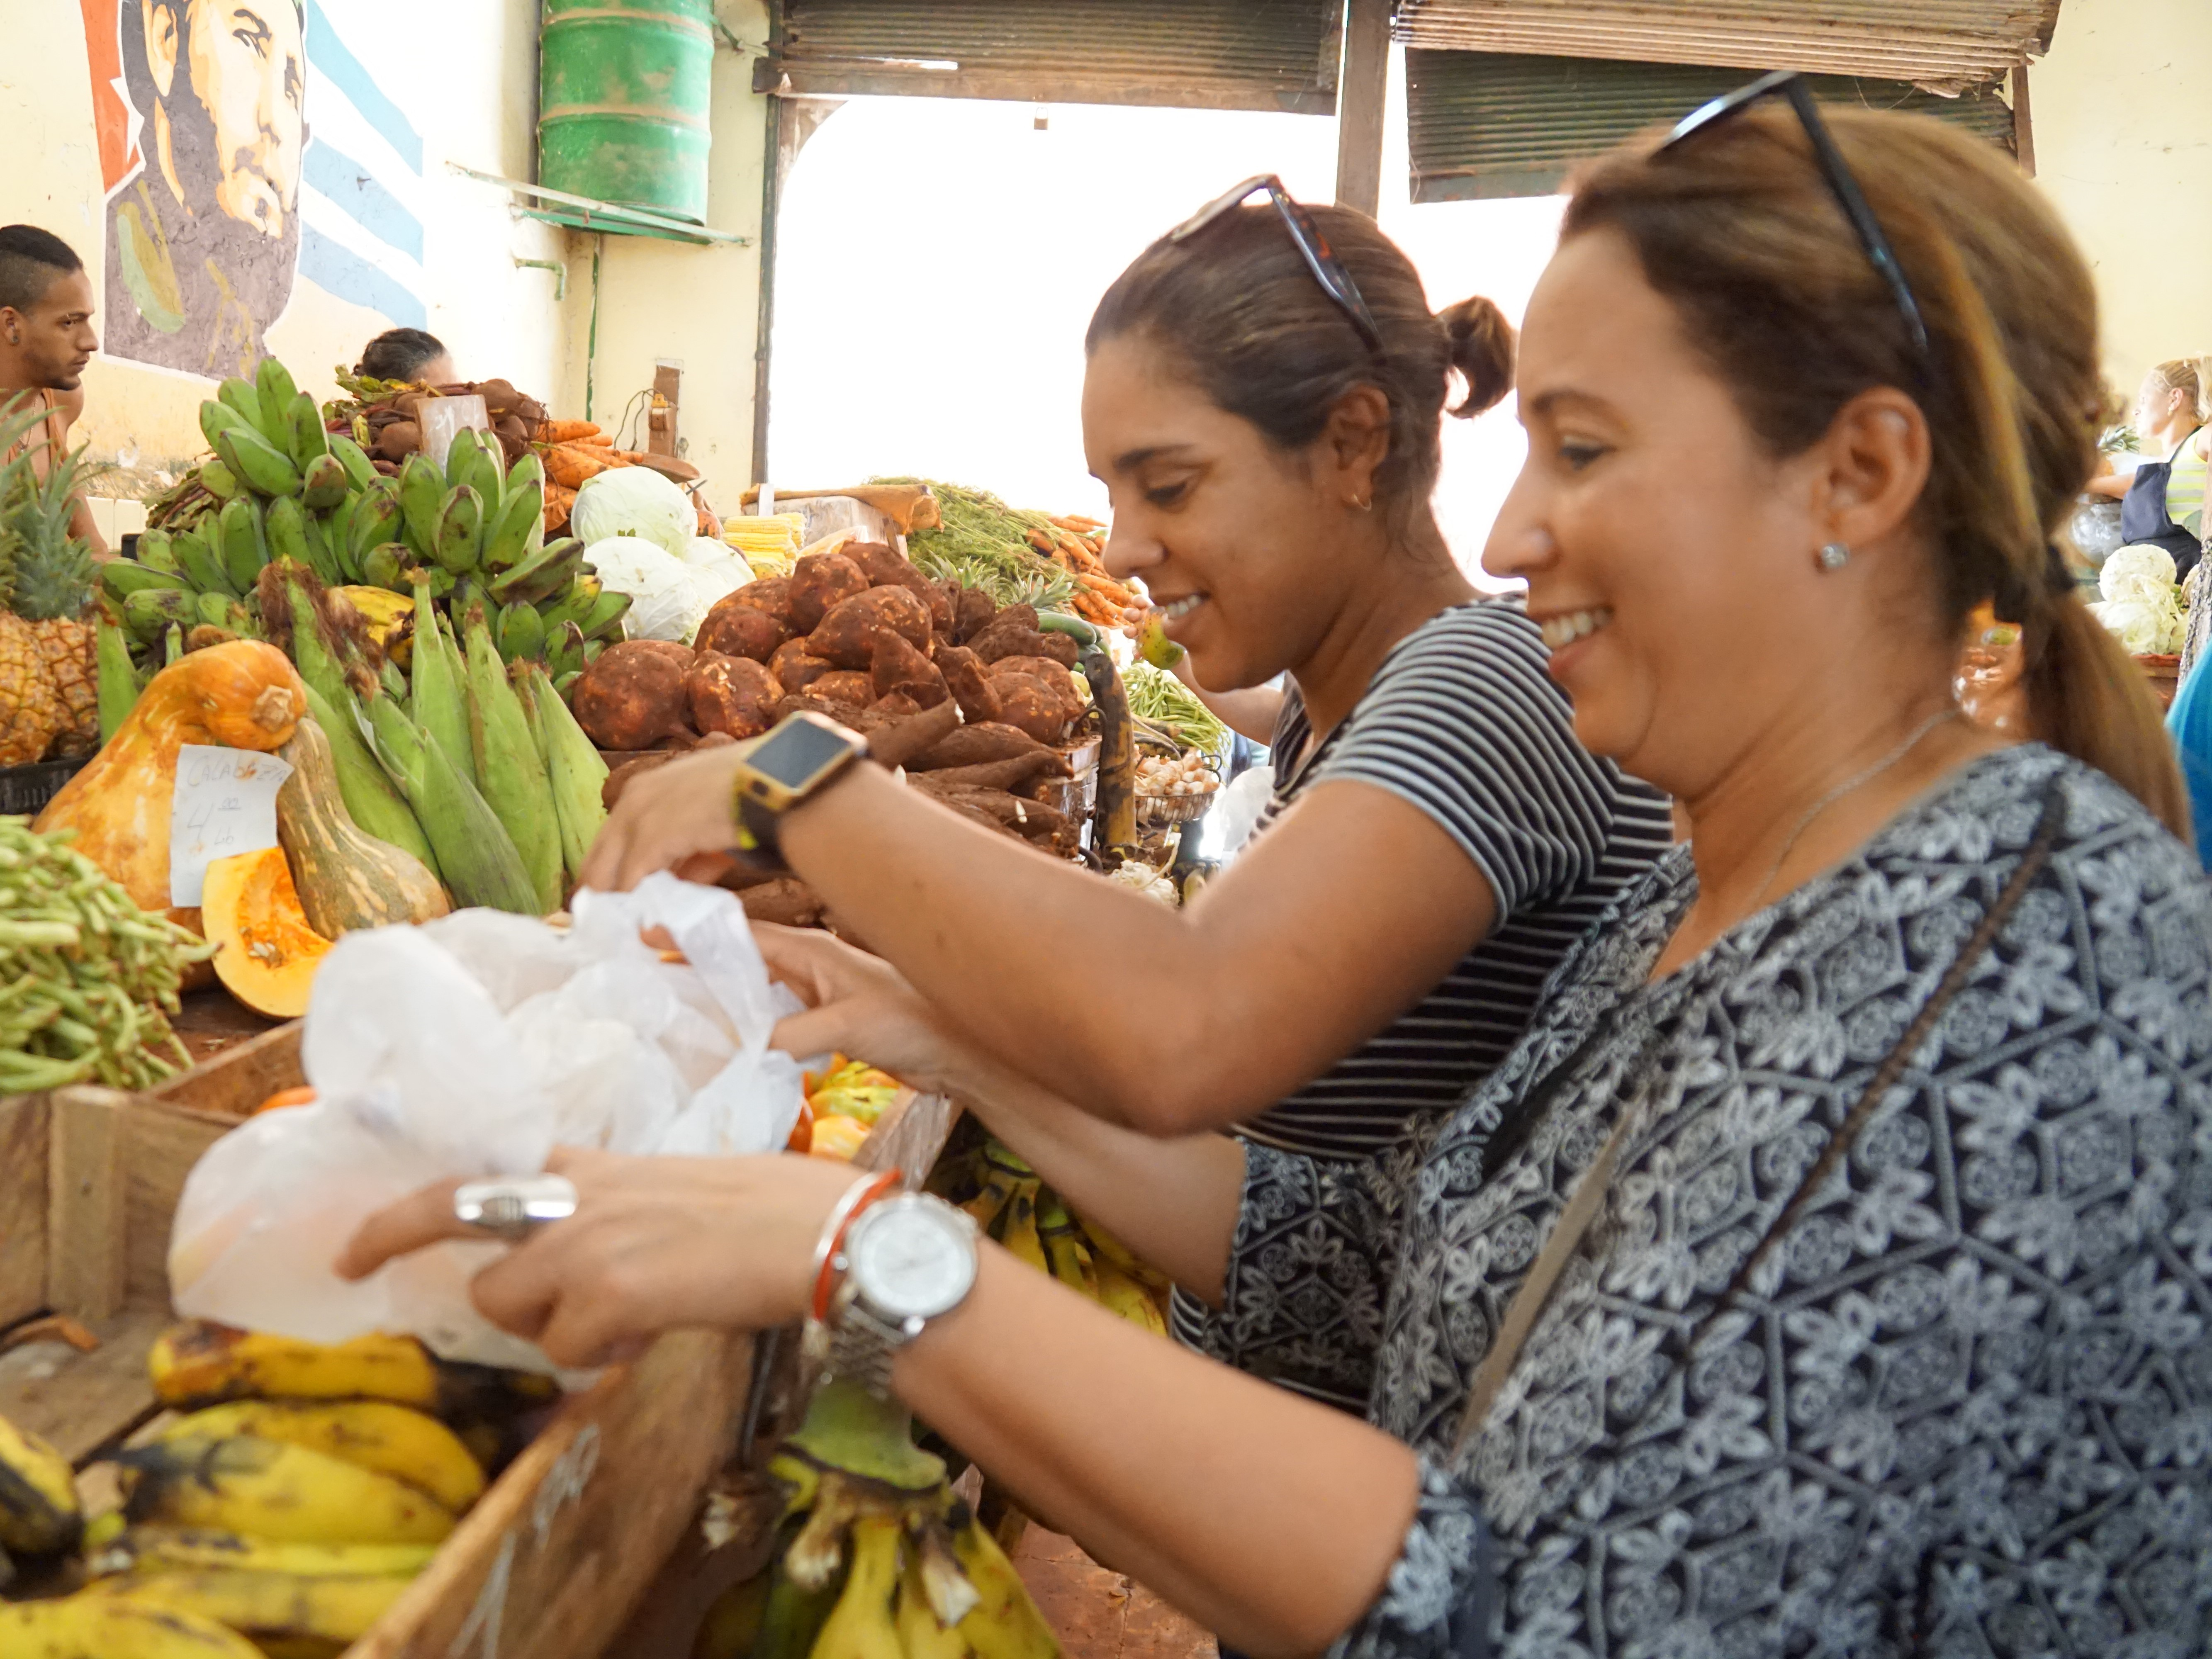 Chicharitas - Cuban fried green banana chips